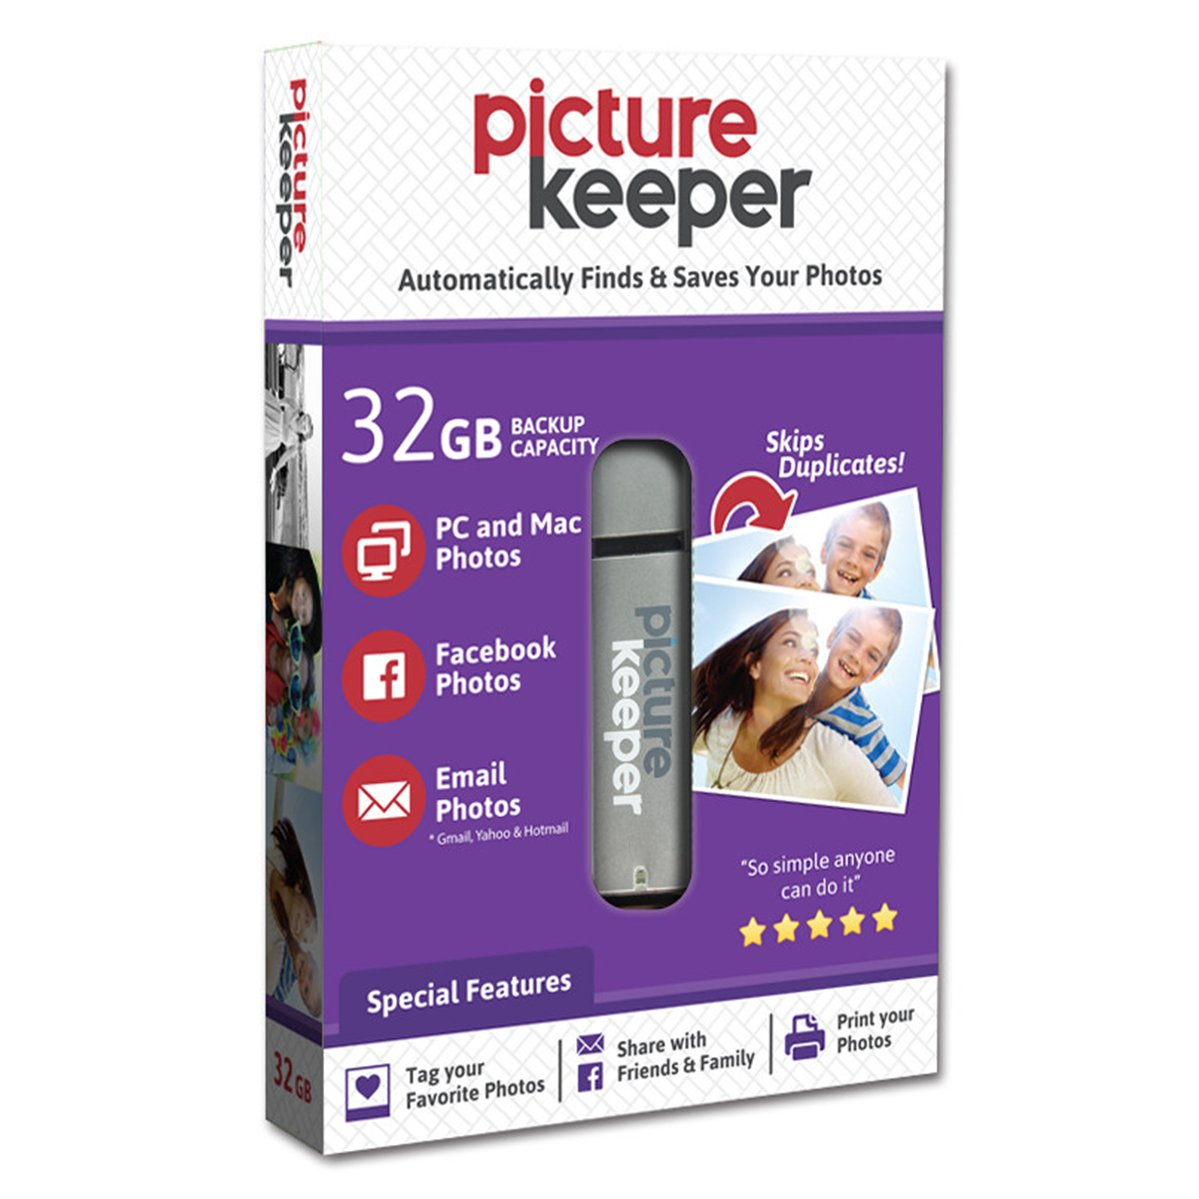 Picture Keeper 32GB Portable Flash USB Photo Backup and Storage Device for PC and MAC Computers by Picture Keeper